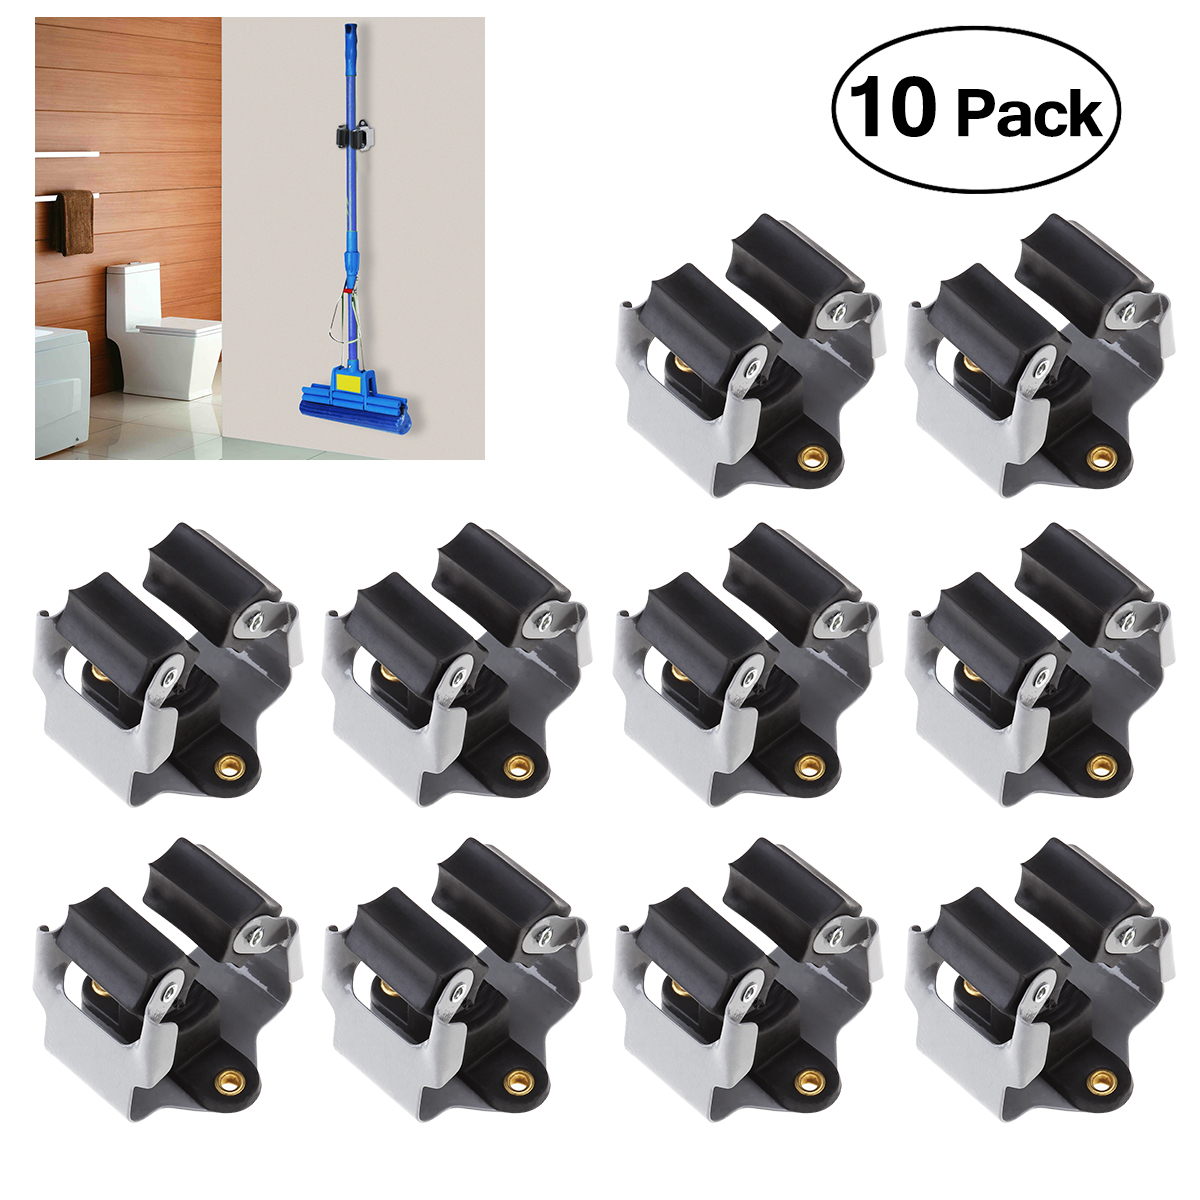 PIXNOR 10PCS Broom Hanger Mop And Broom Holder Broom Organizer Grip Clips Wall Mounted Garden Storage Rack With Screws (Black)